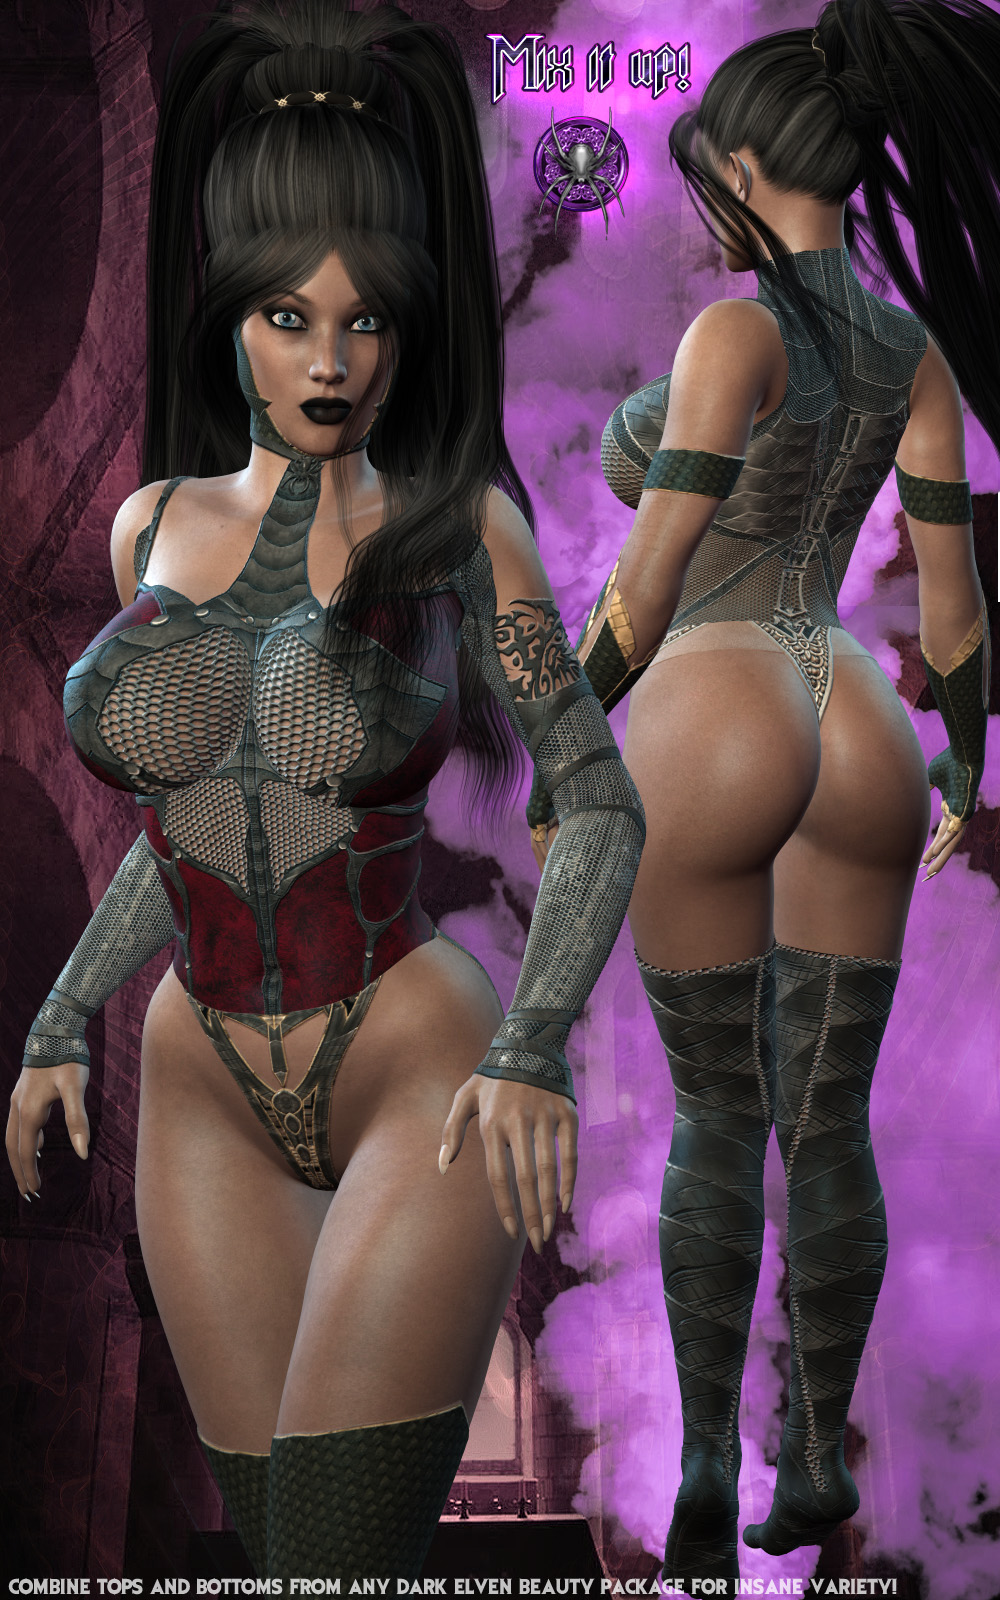 3d elven women naked tube